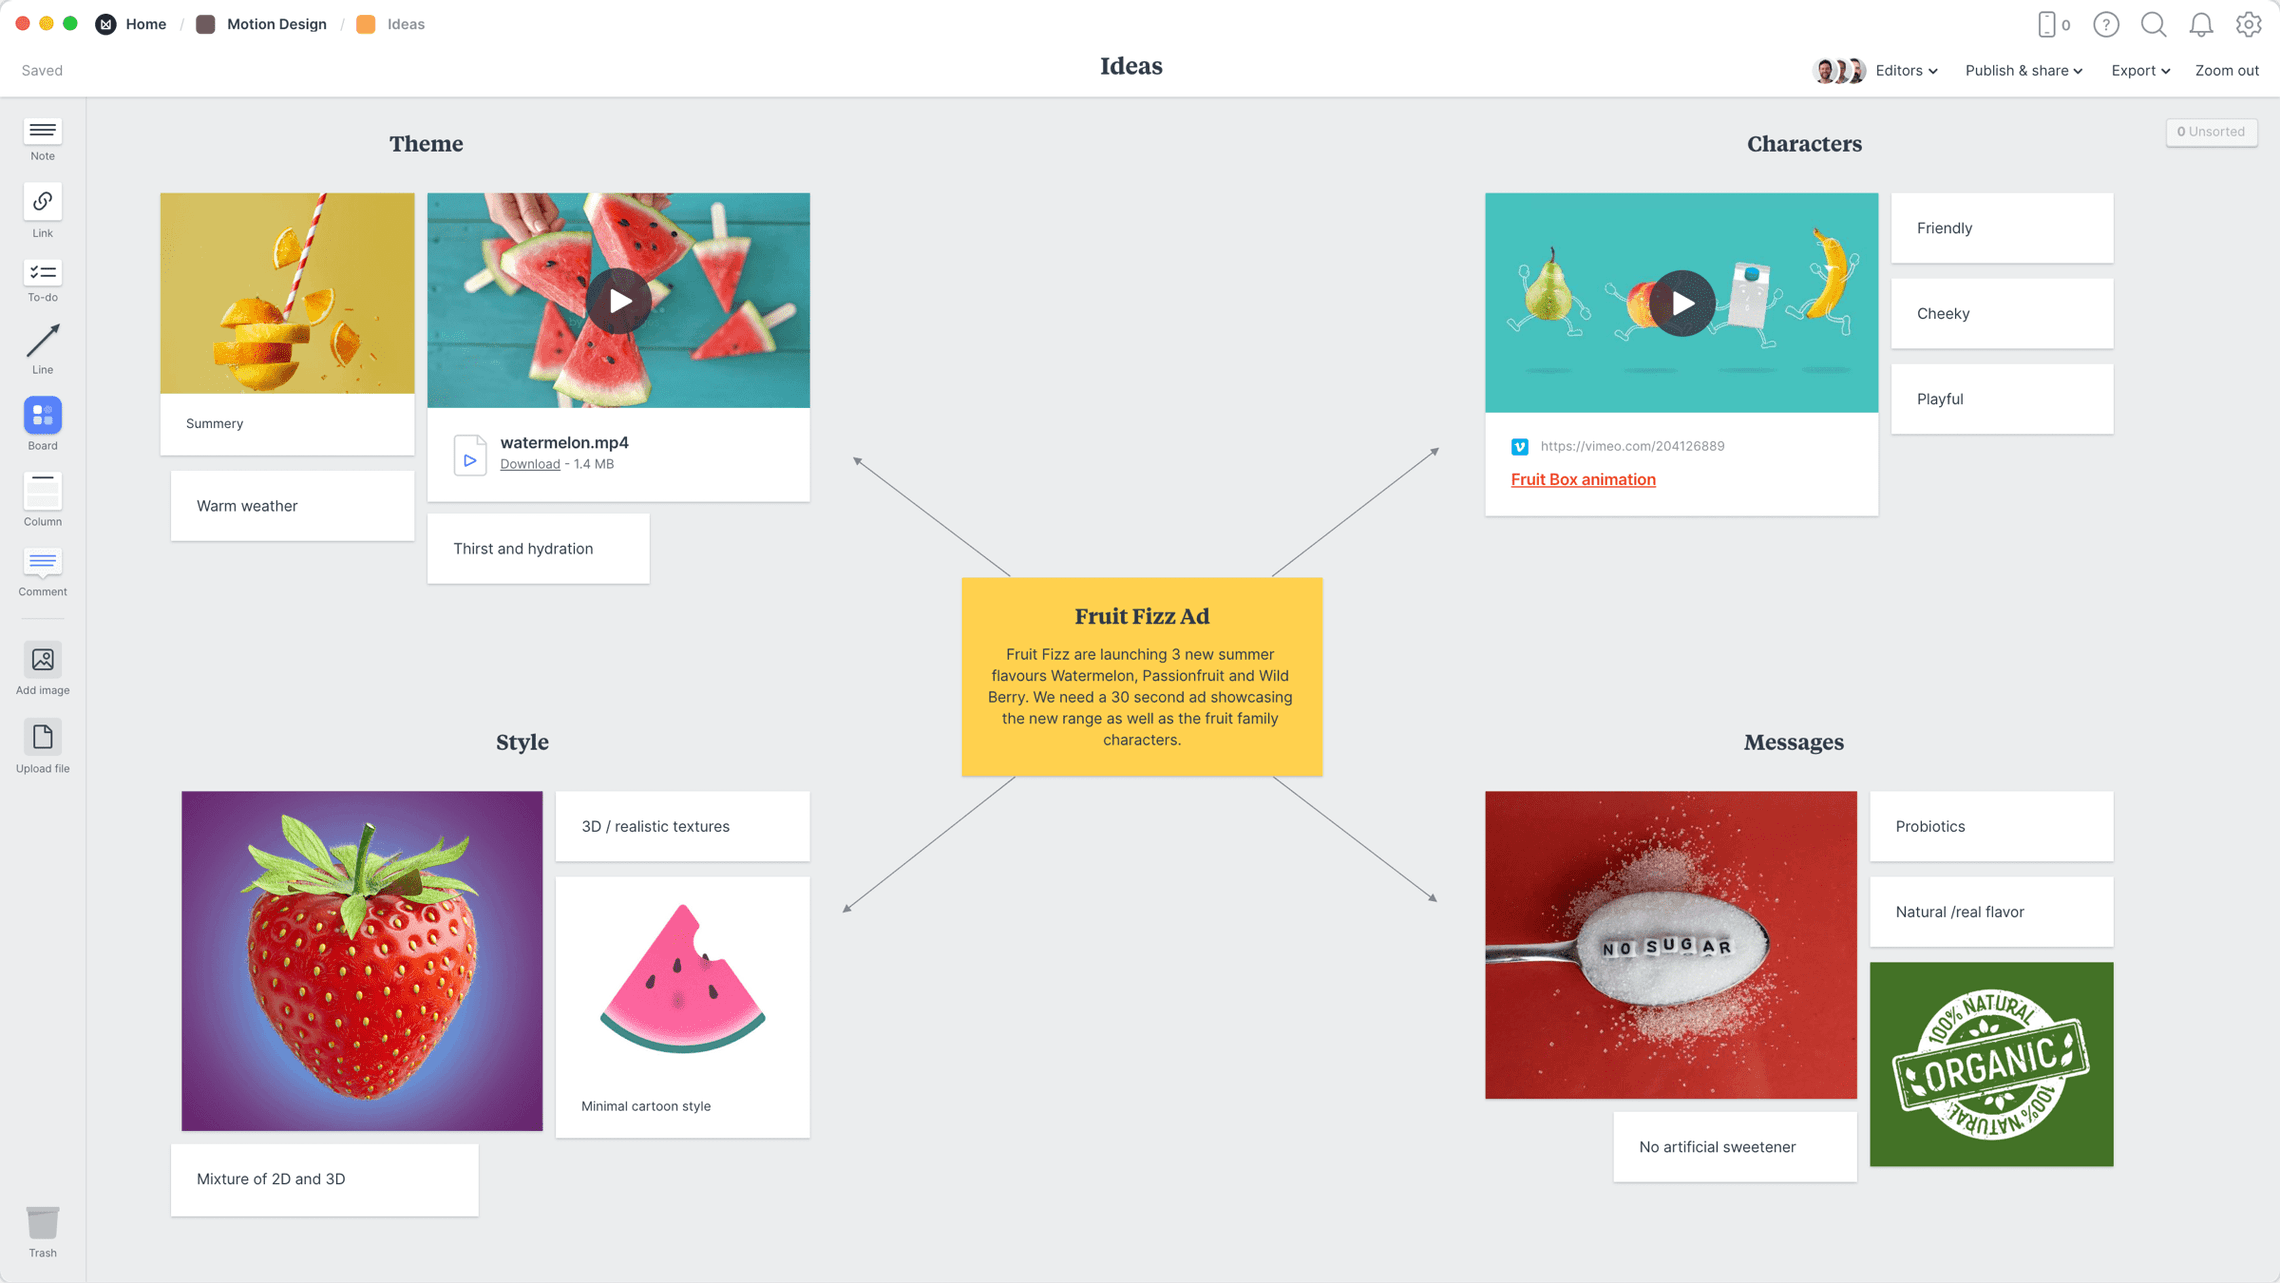 Motion Design Brainstorming Template, within the Milanote app